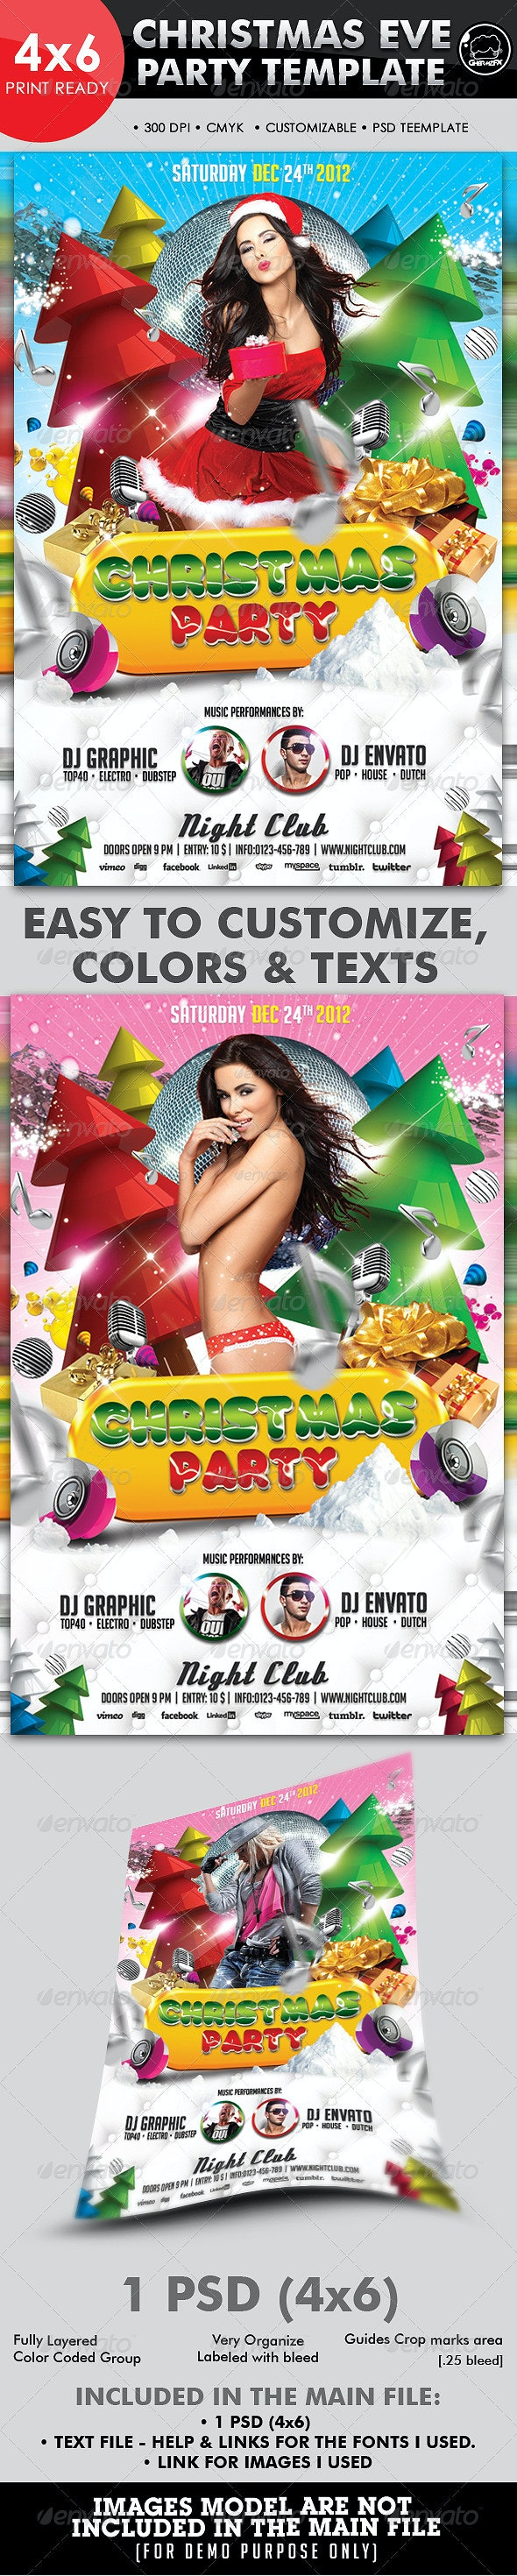 Christmas Eve Party Flyer Template - Holidays Events